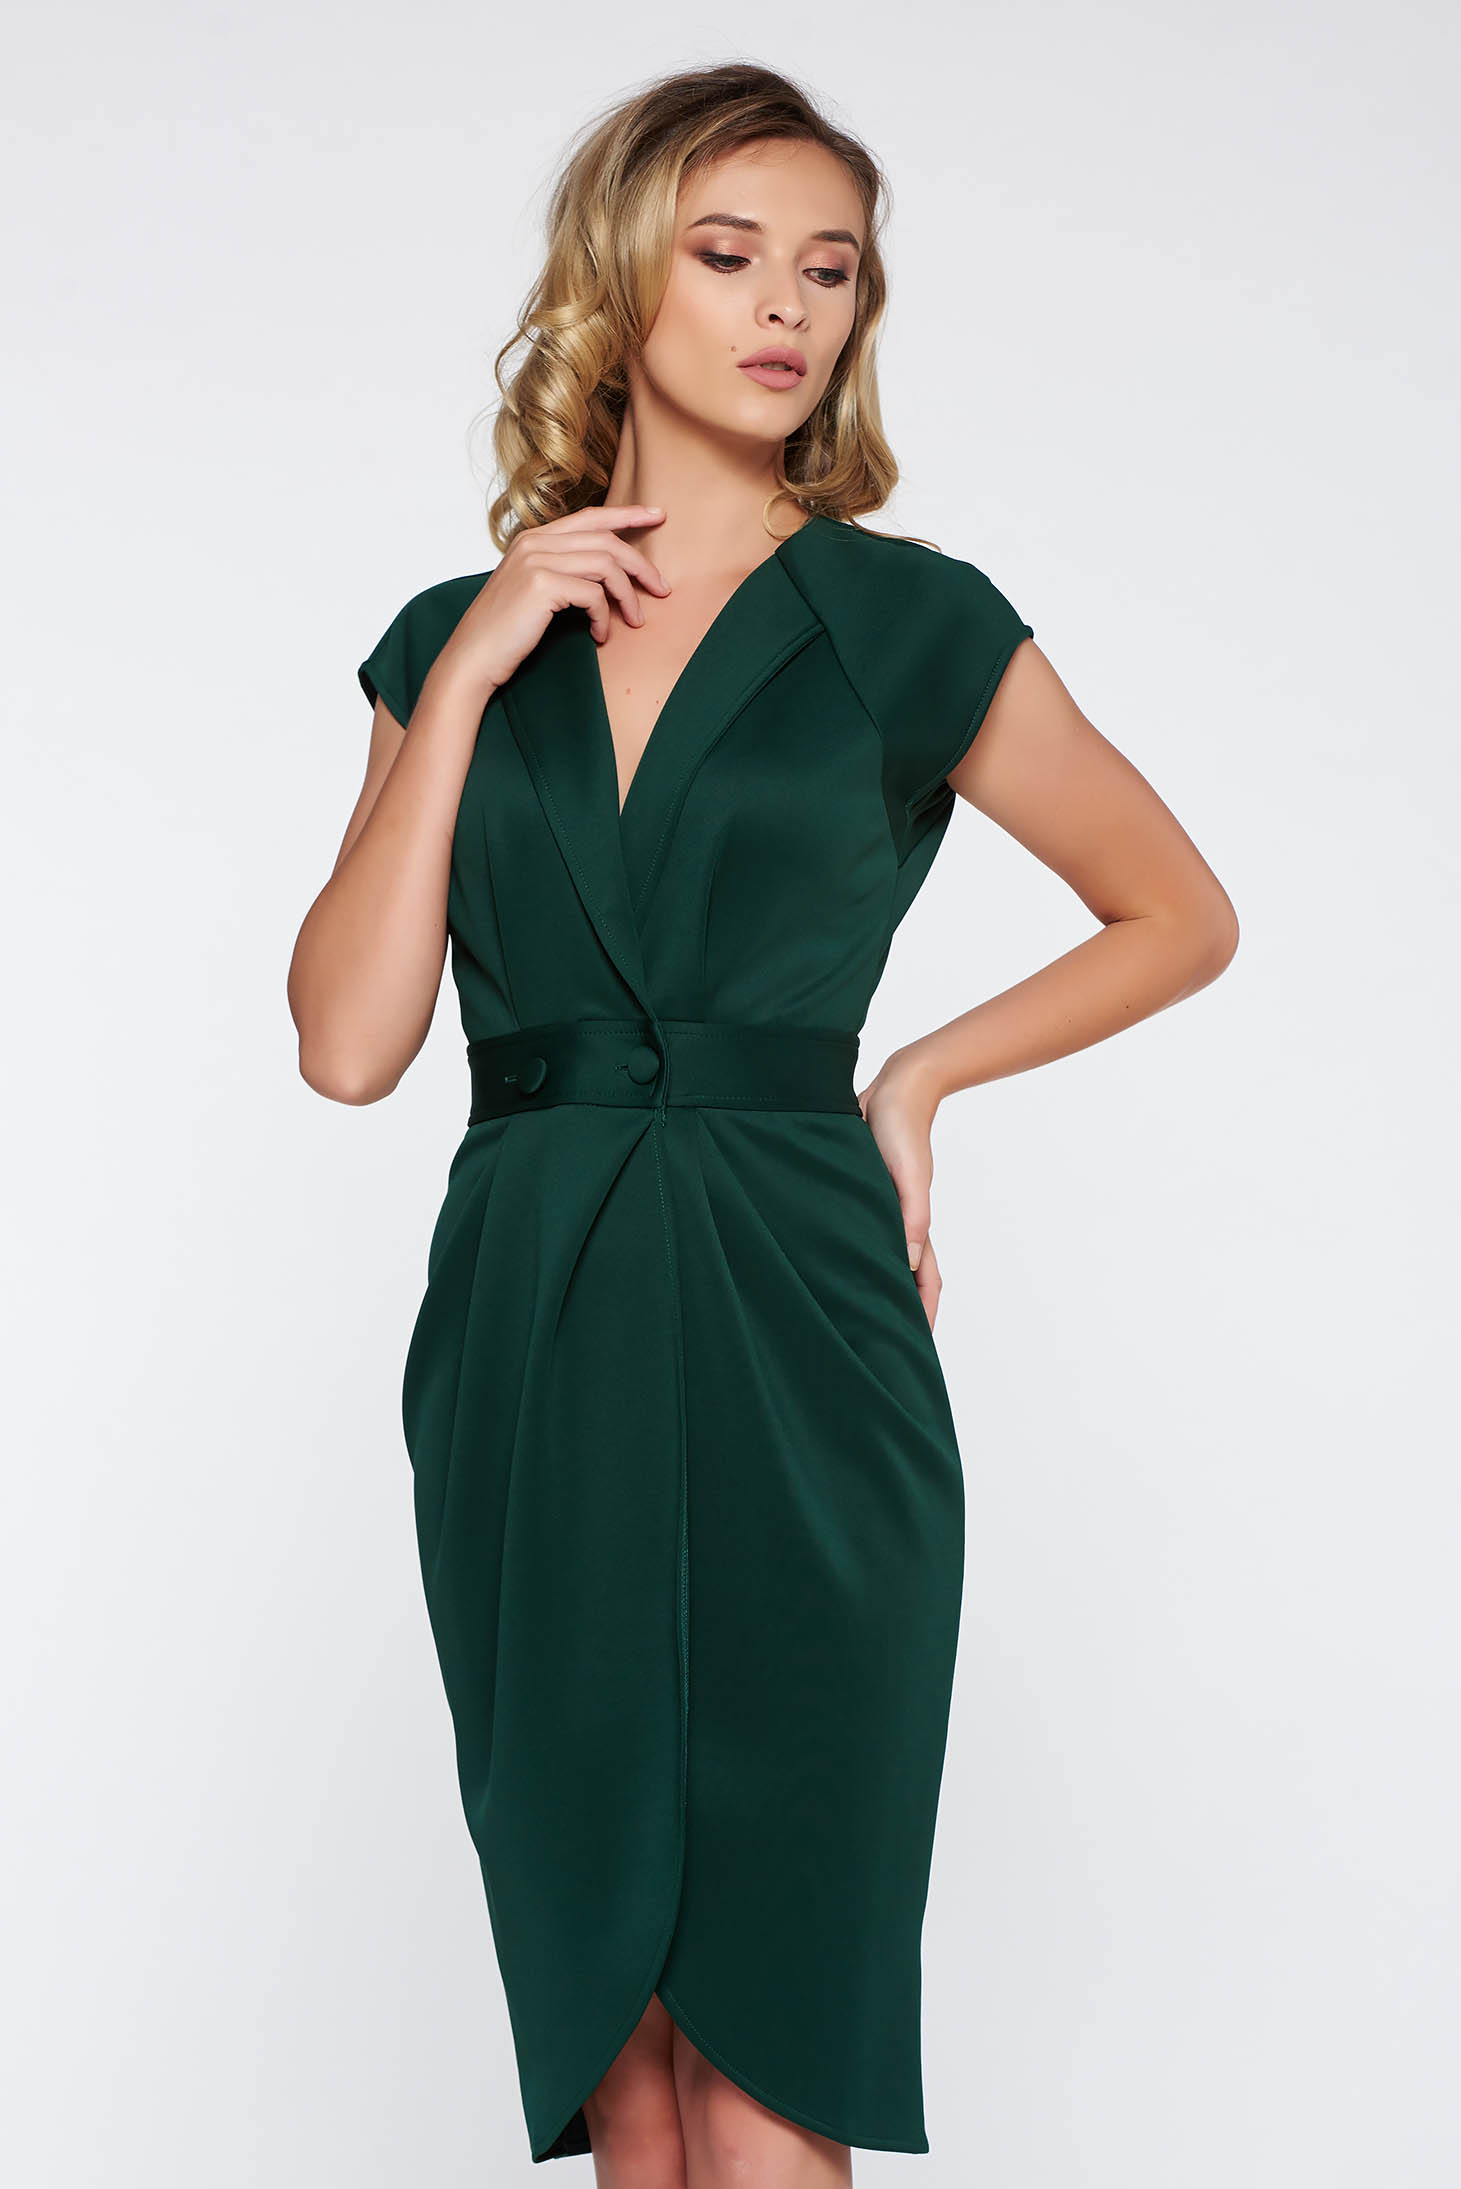 StarShinerS darkgreen elegant with tented cut dress soft fabric with v-neckline